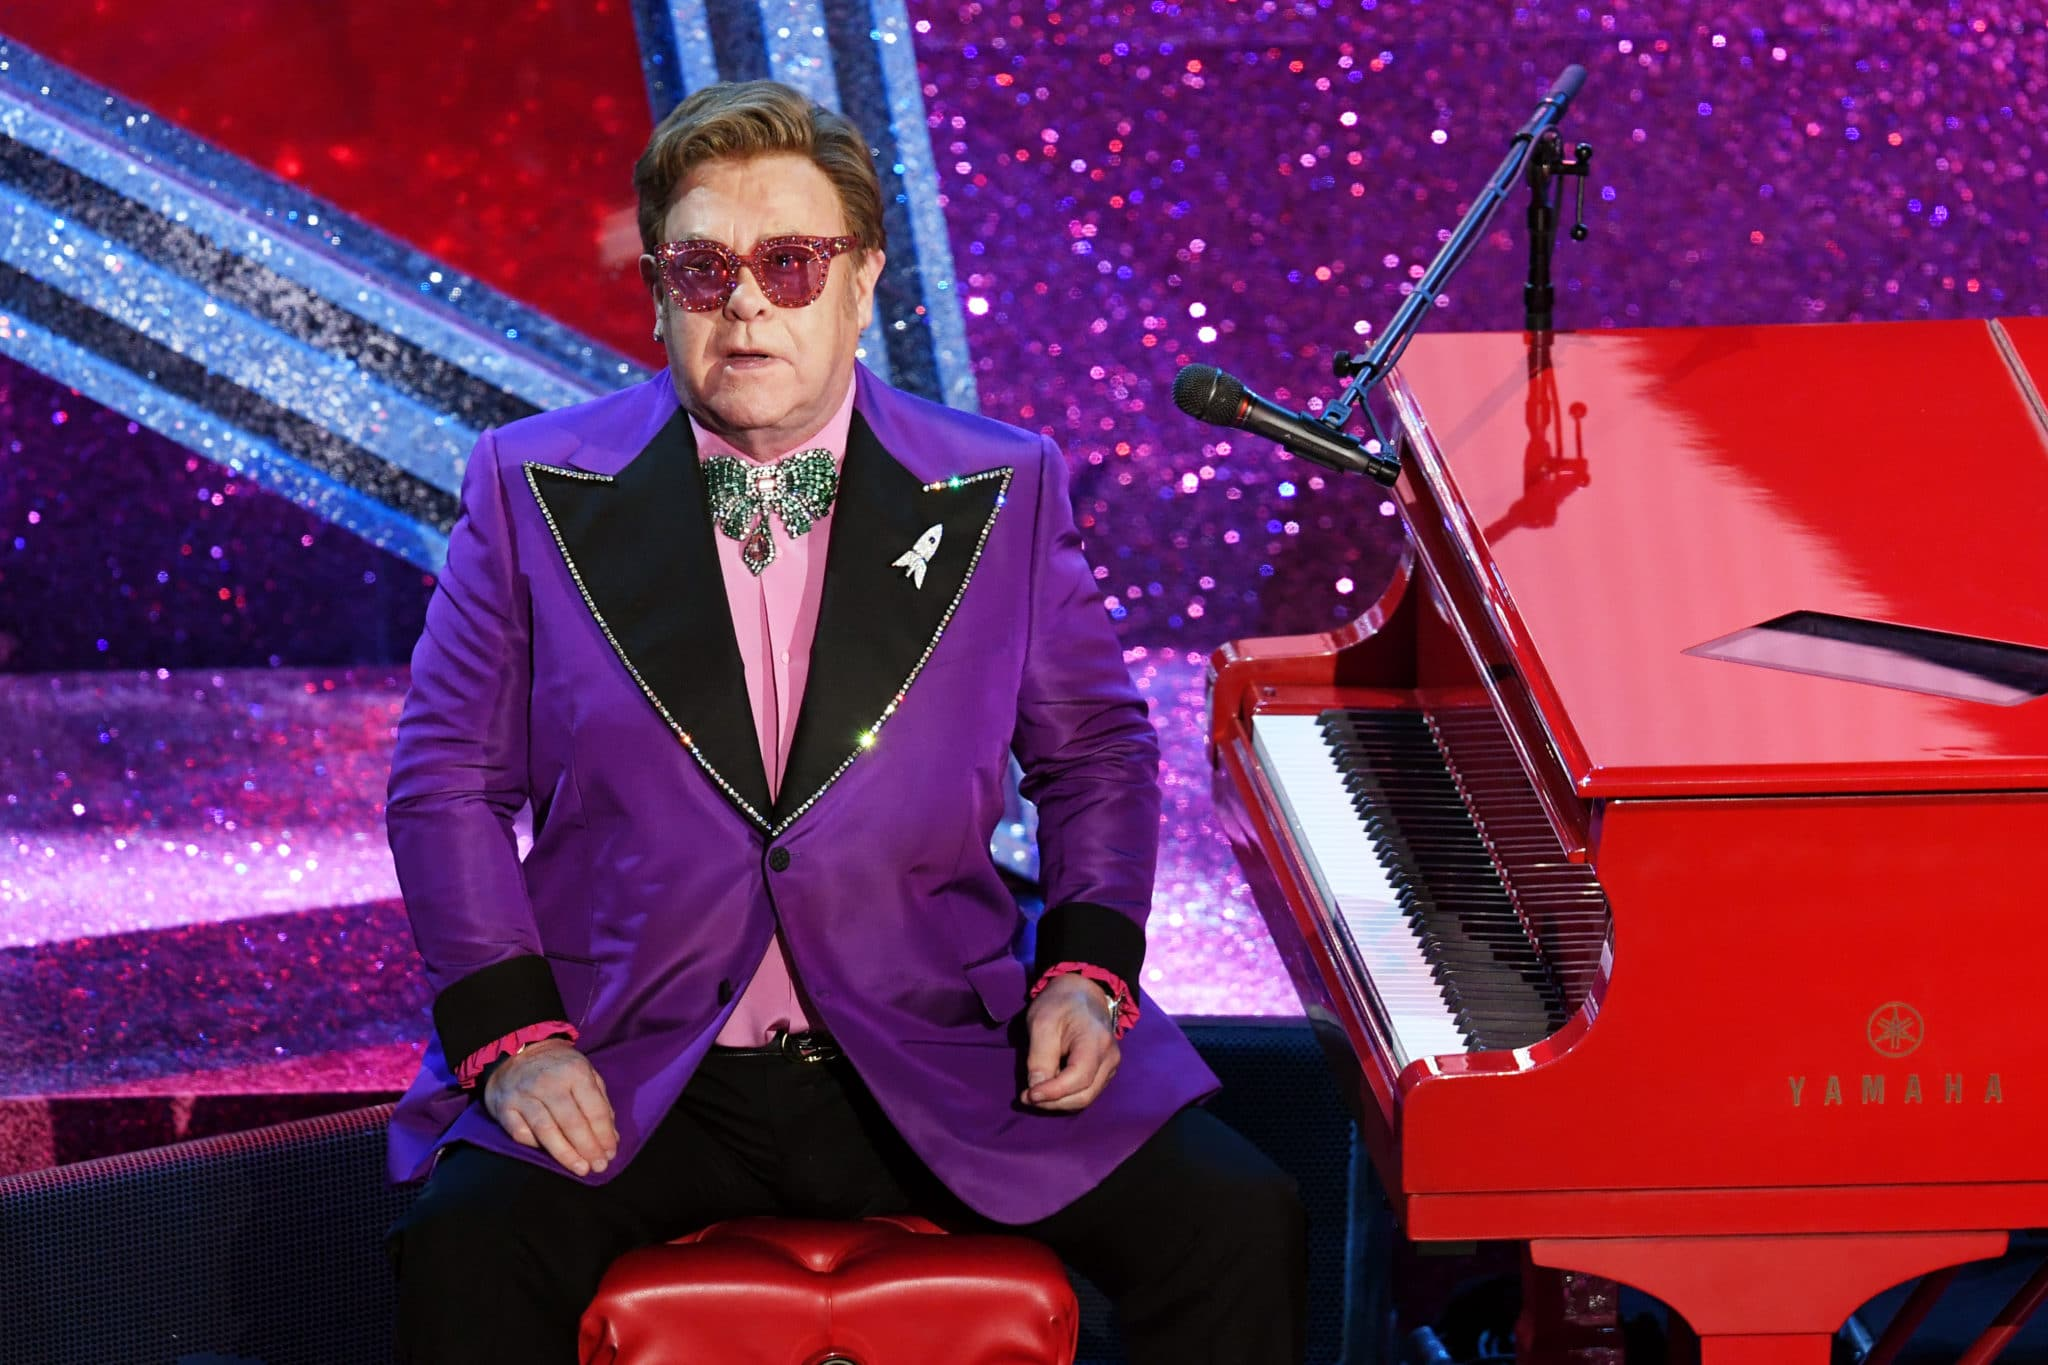 Sir Elton John had to cut his tour short